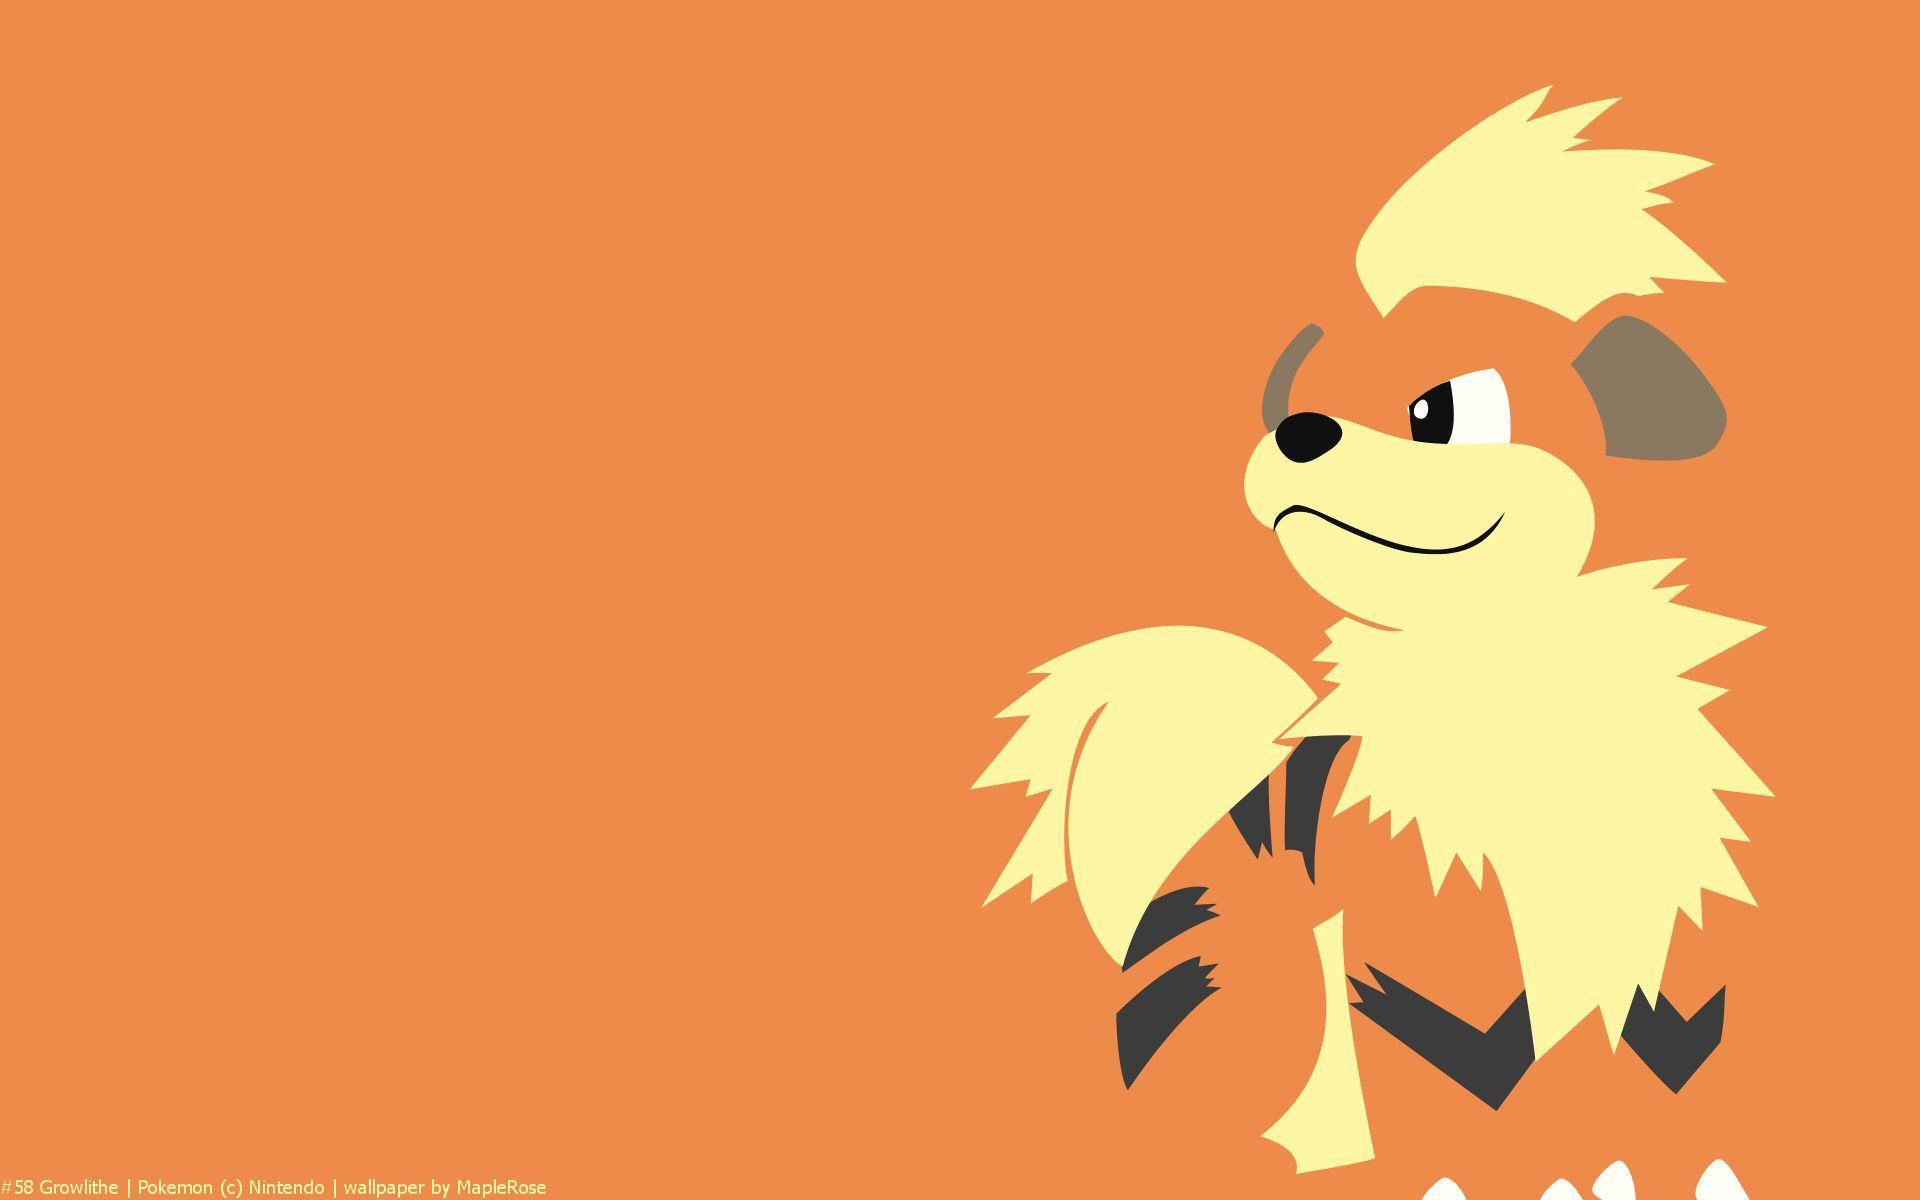 Growlithe Pokemon HD Wallpaper - Free HD wallpapers, Iphone ...